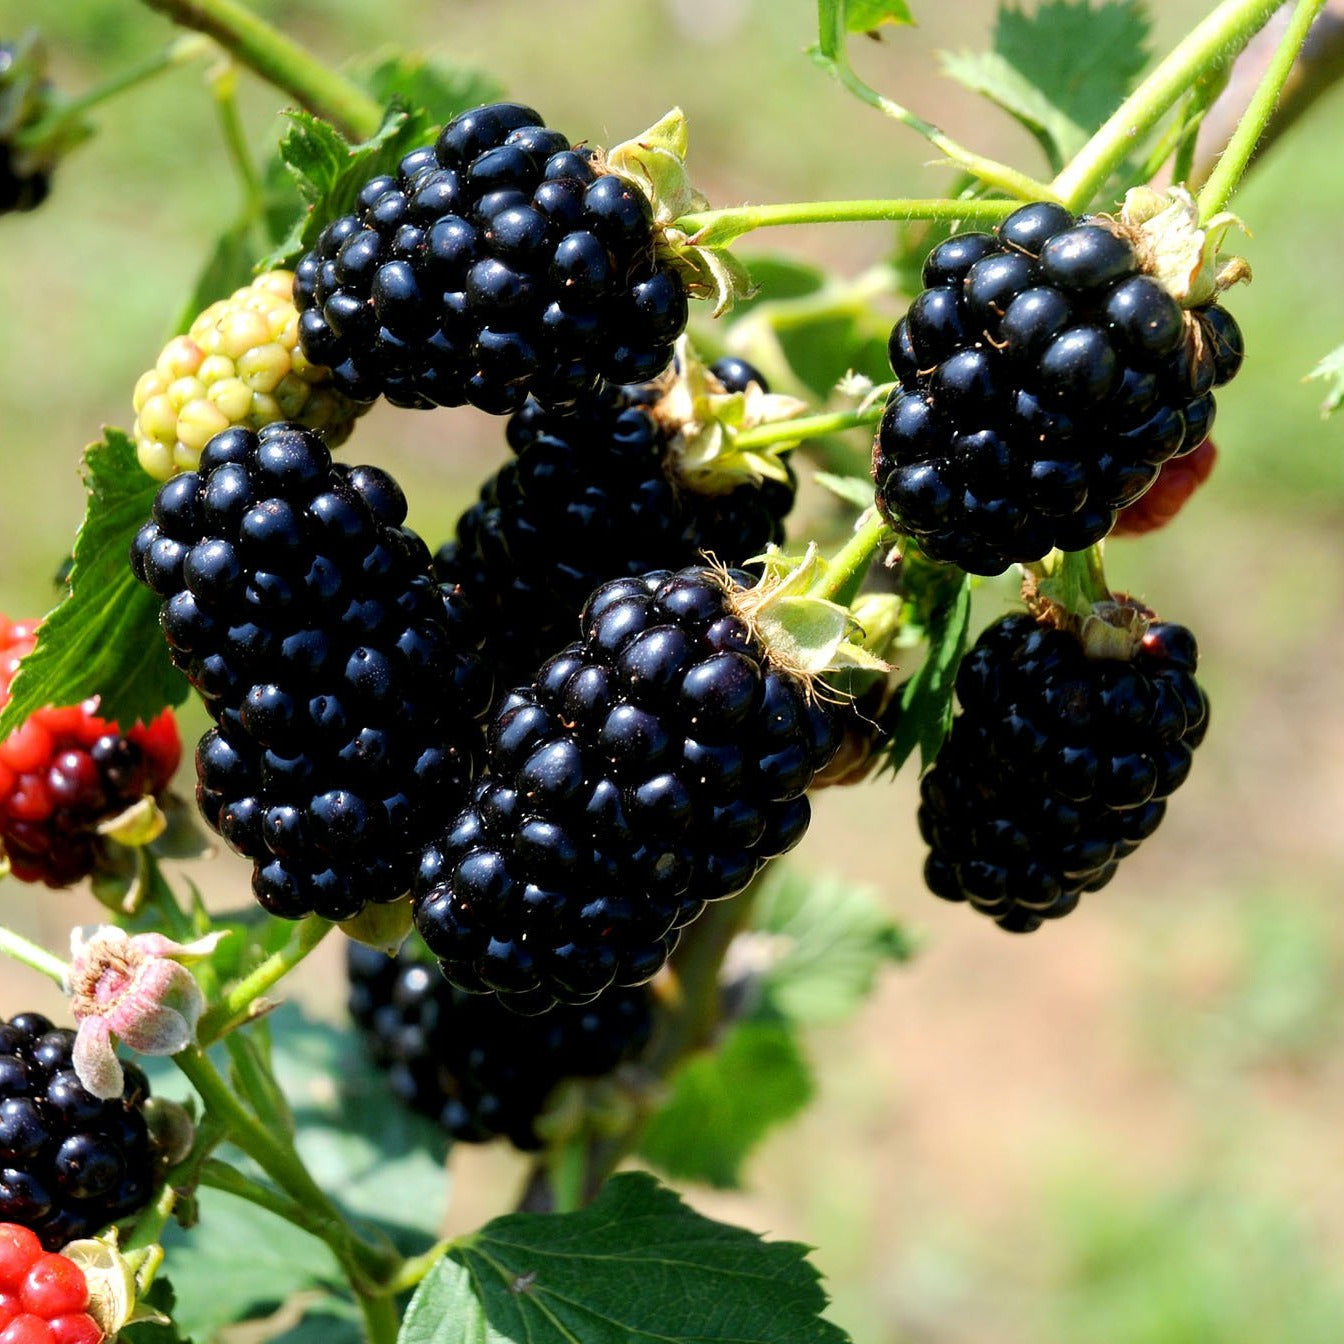 Blackberry Arapaho, Earliest Ripening Thornless Variety. Fruit Are Medium in Size and an Average Sugar Content of 9-10% (1 Gallon Bareroot Plant)